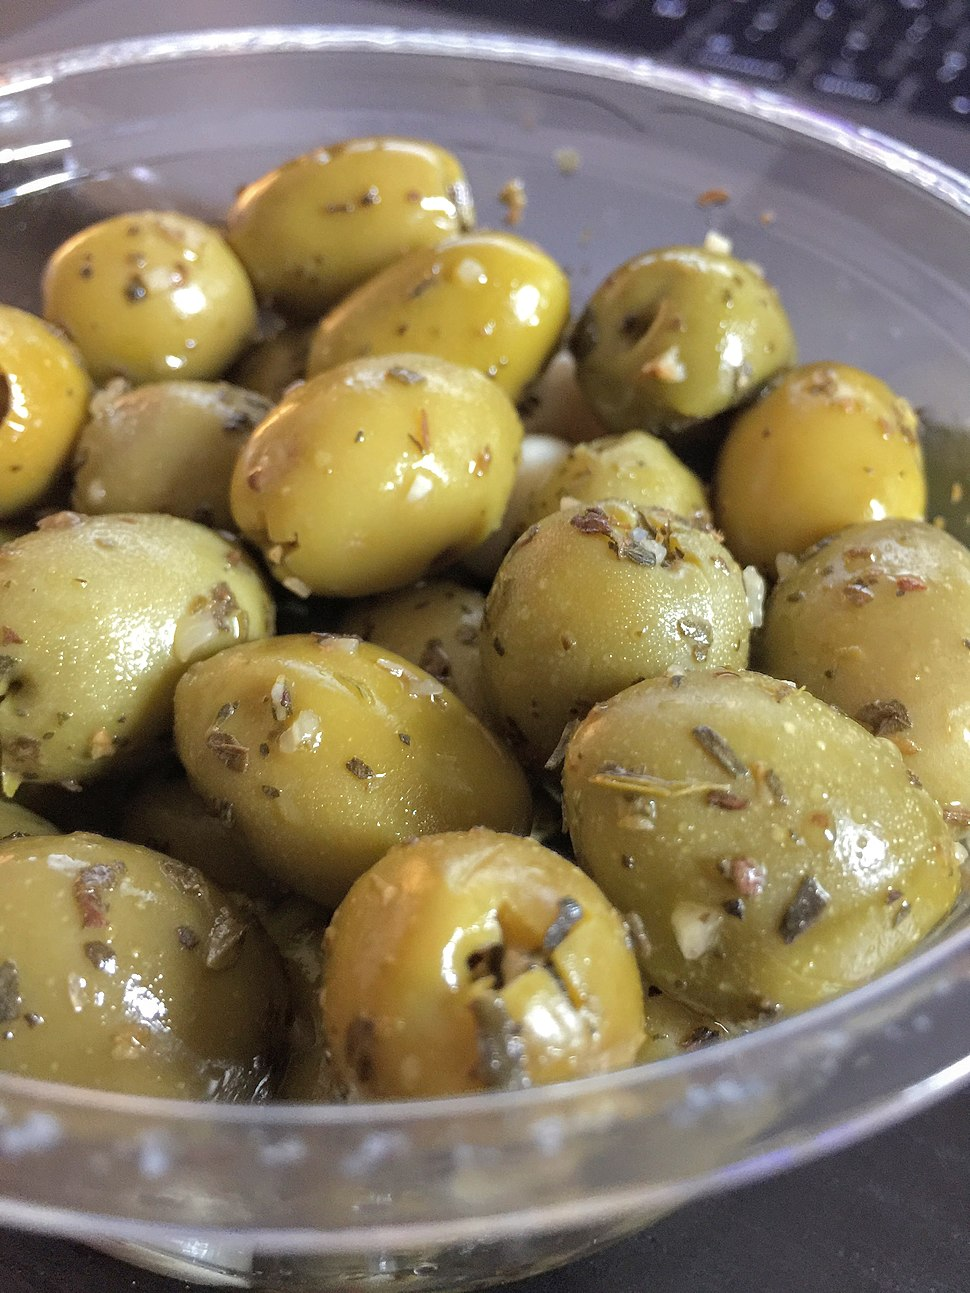 Olives in cup